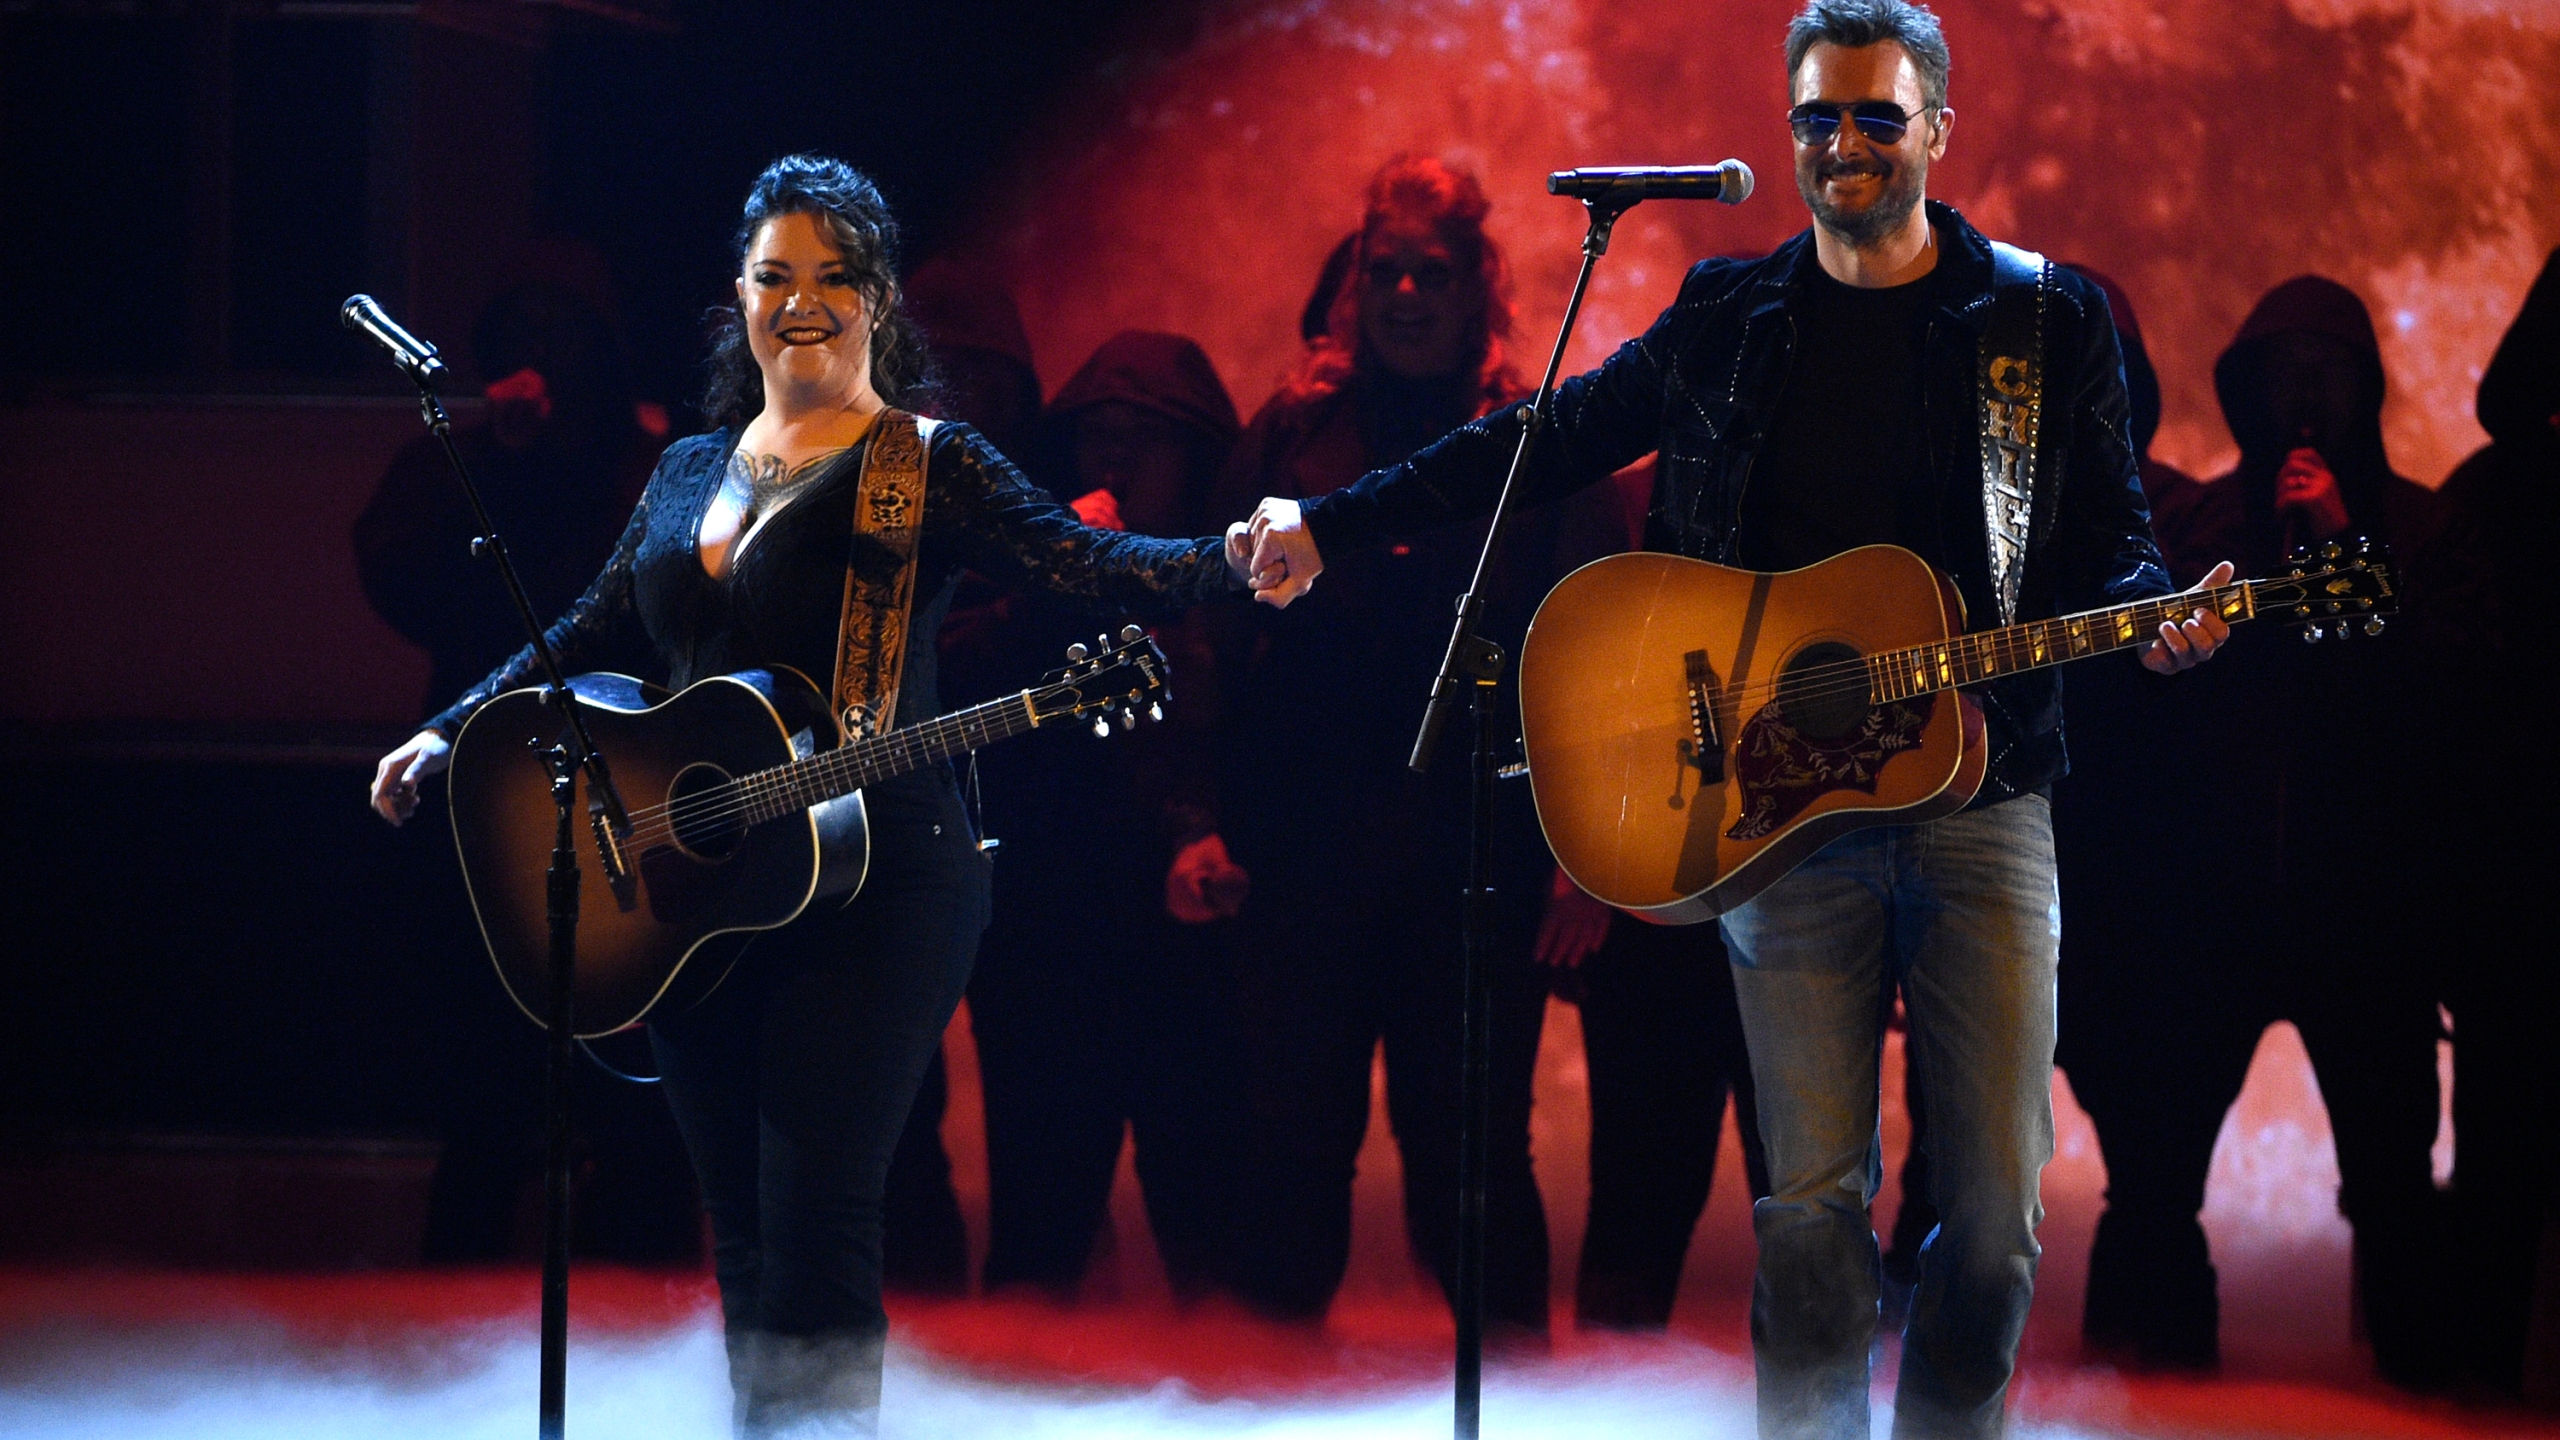 54th_Annual_Academy_of_Country_Music_Awards_-_Show_07145-159532.jpg60429568